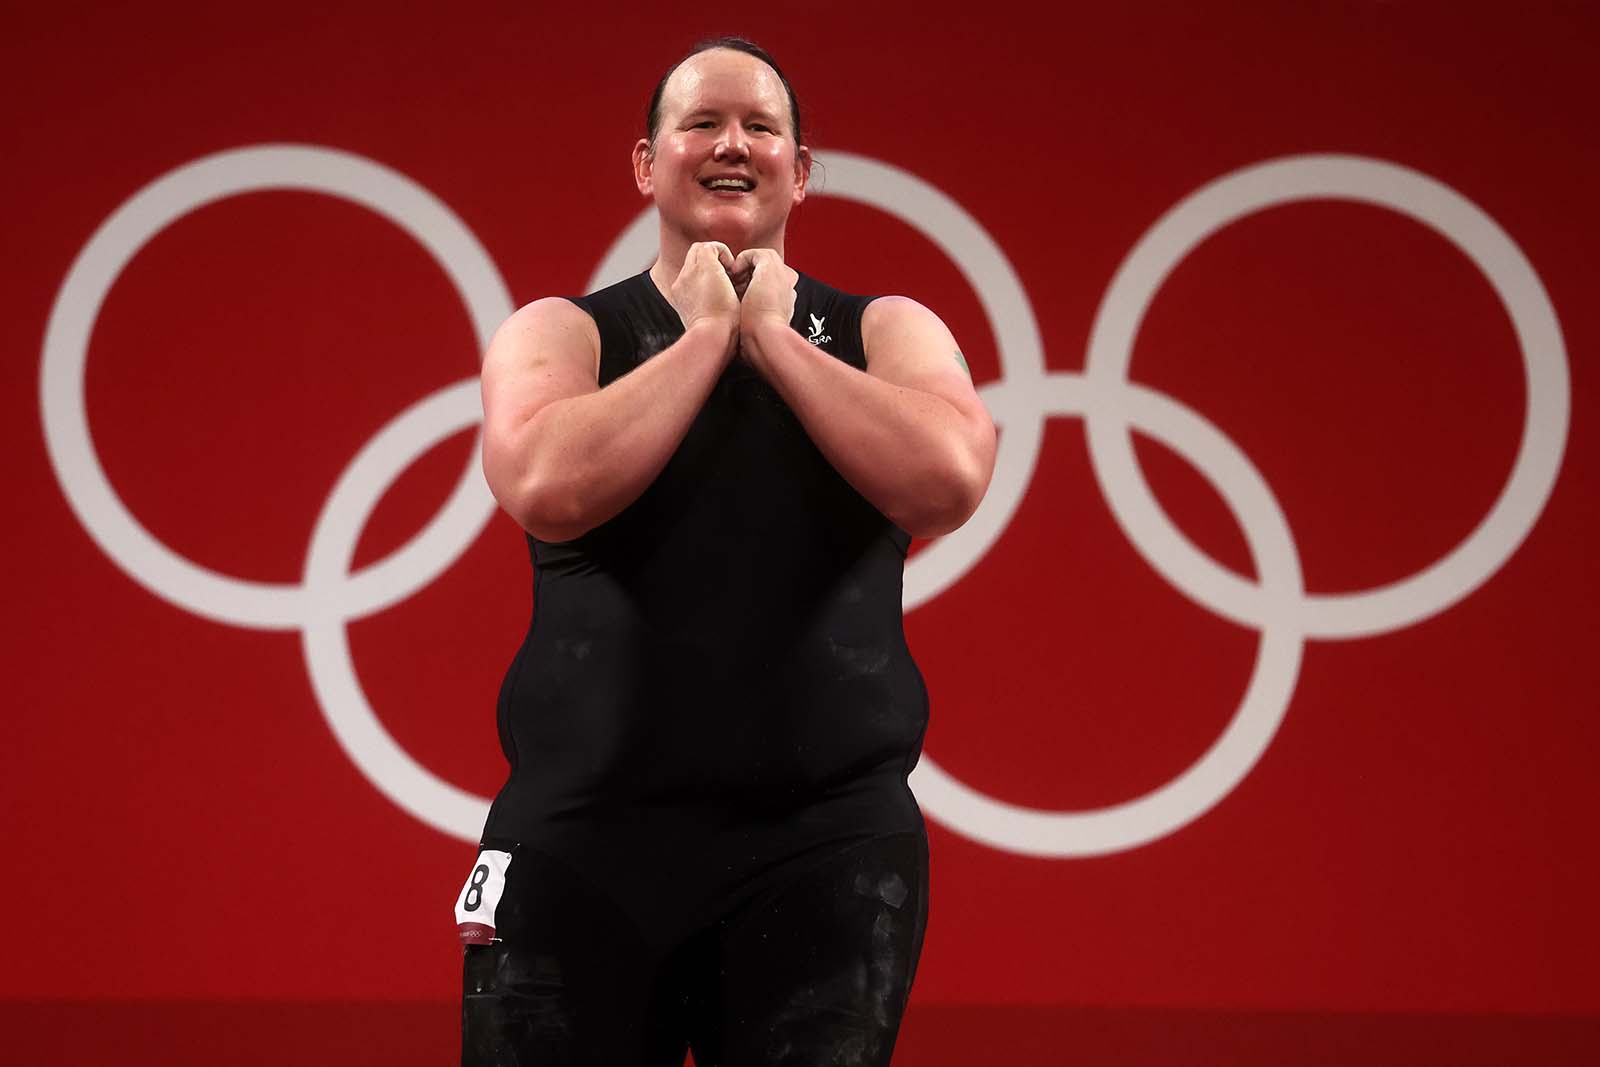 Laurel Hubbard of Zealand reacts during the women's weightlifting +87kg event on August 2.